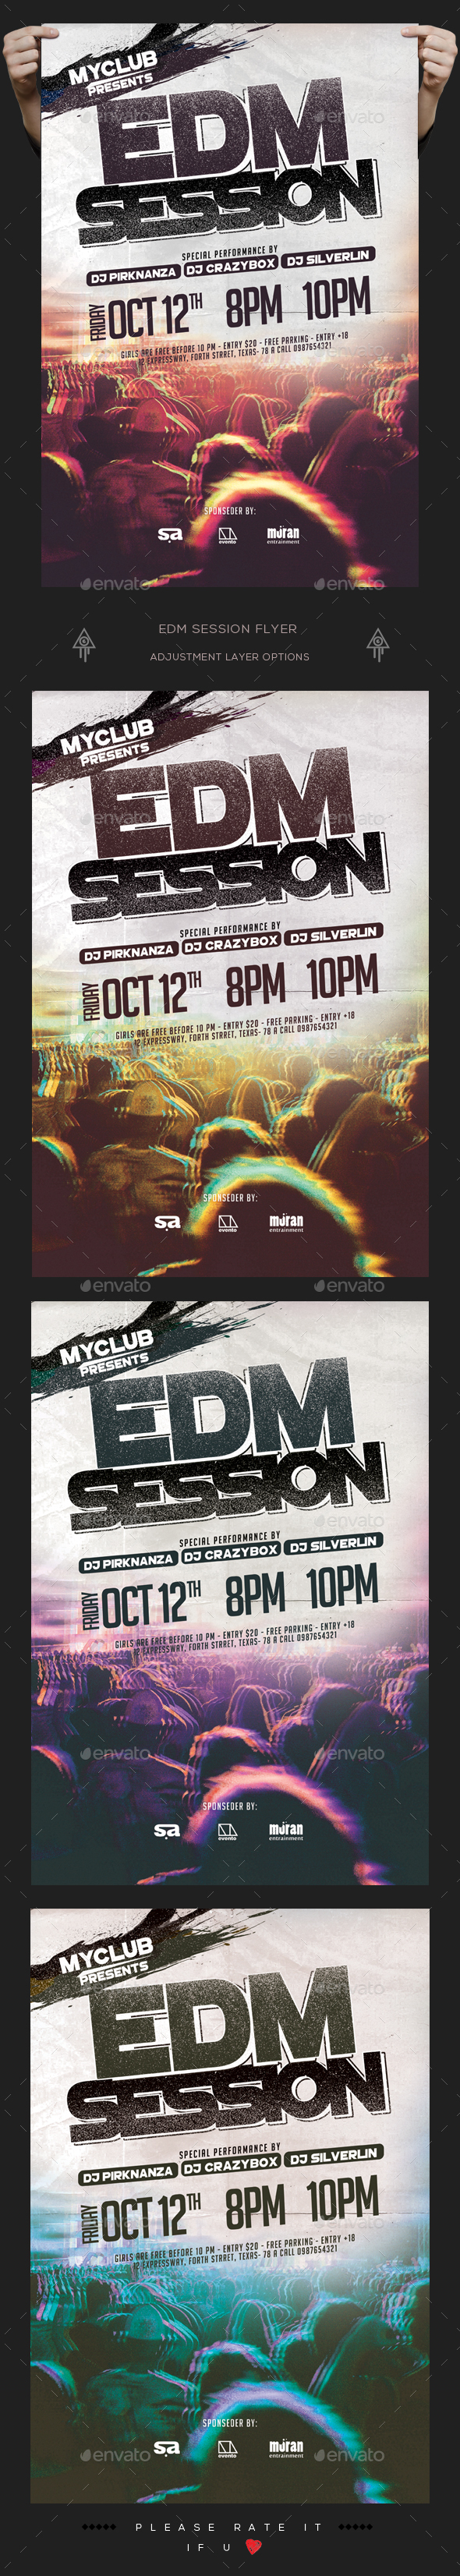 EDM Session Flyer - Clubs & Parties Events